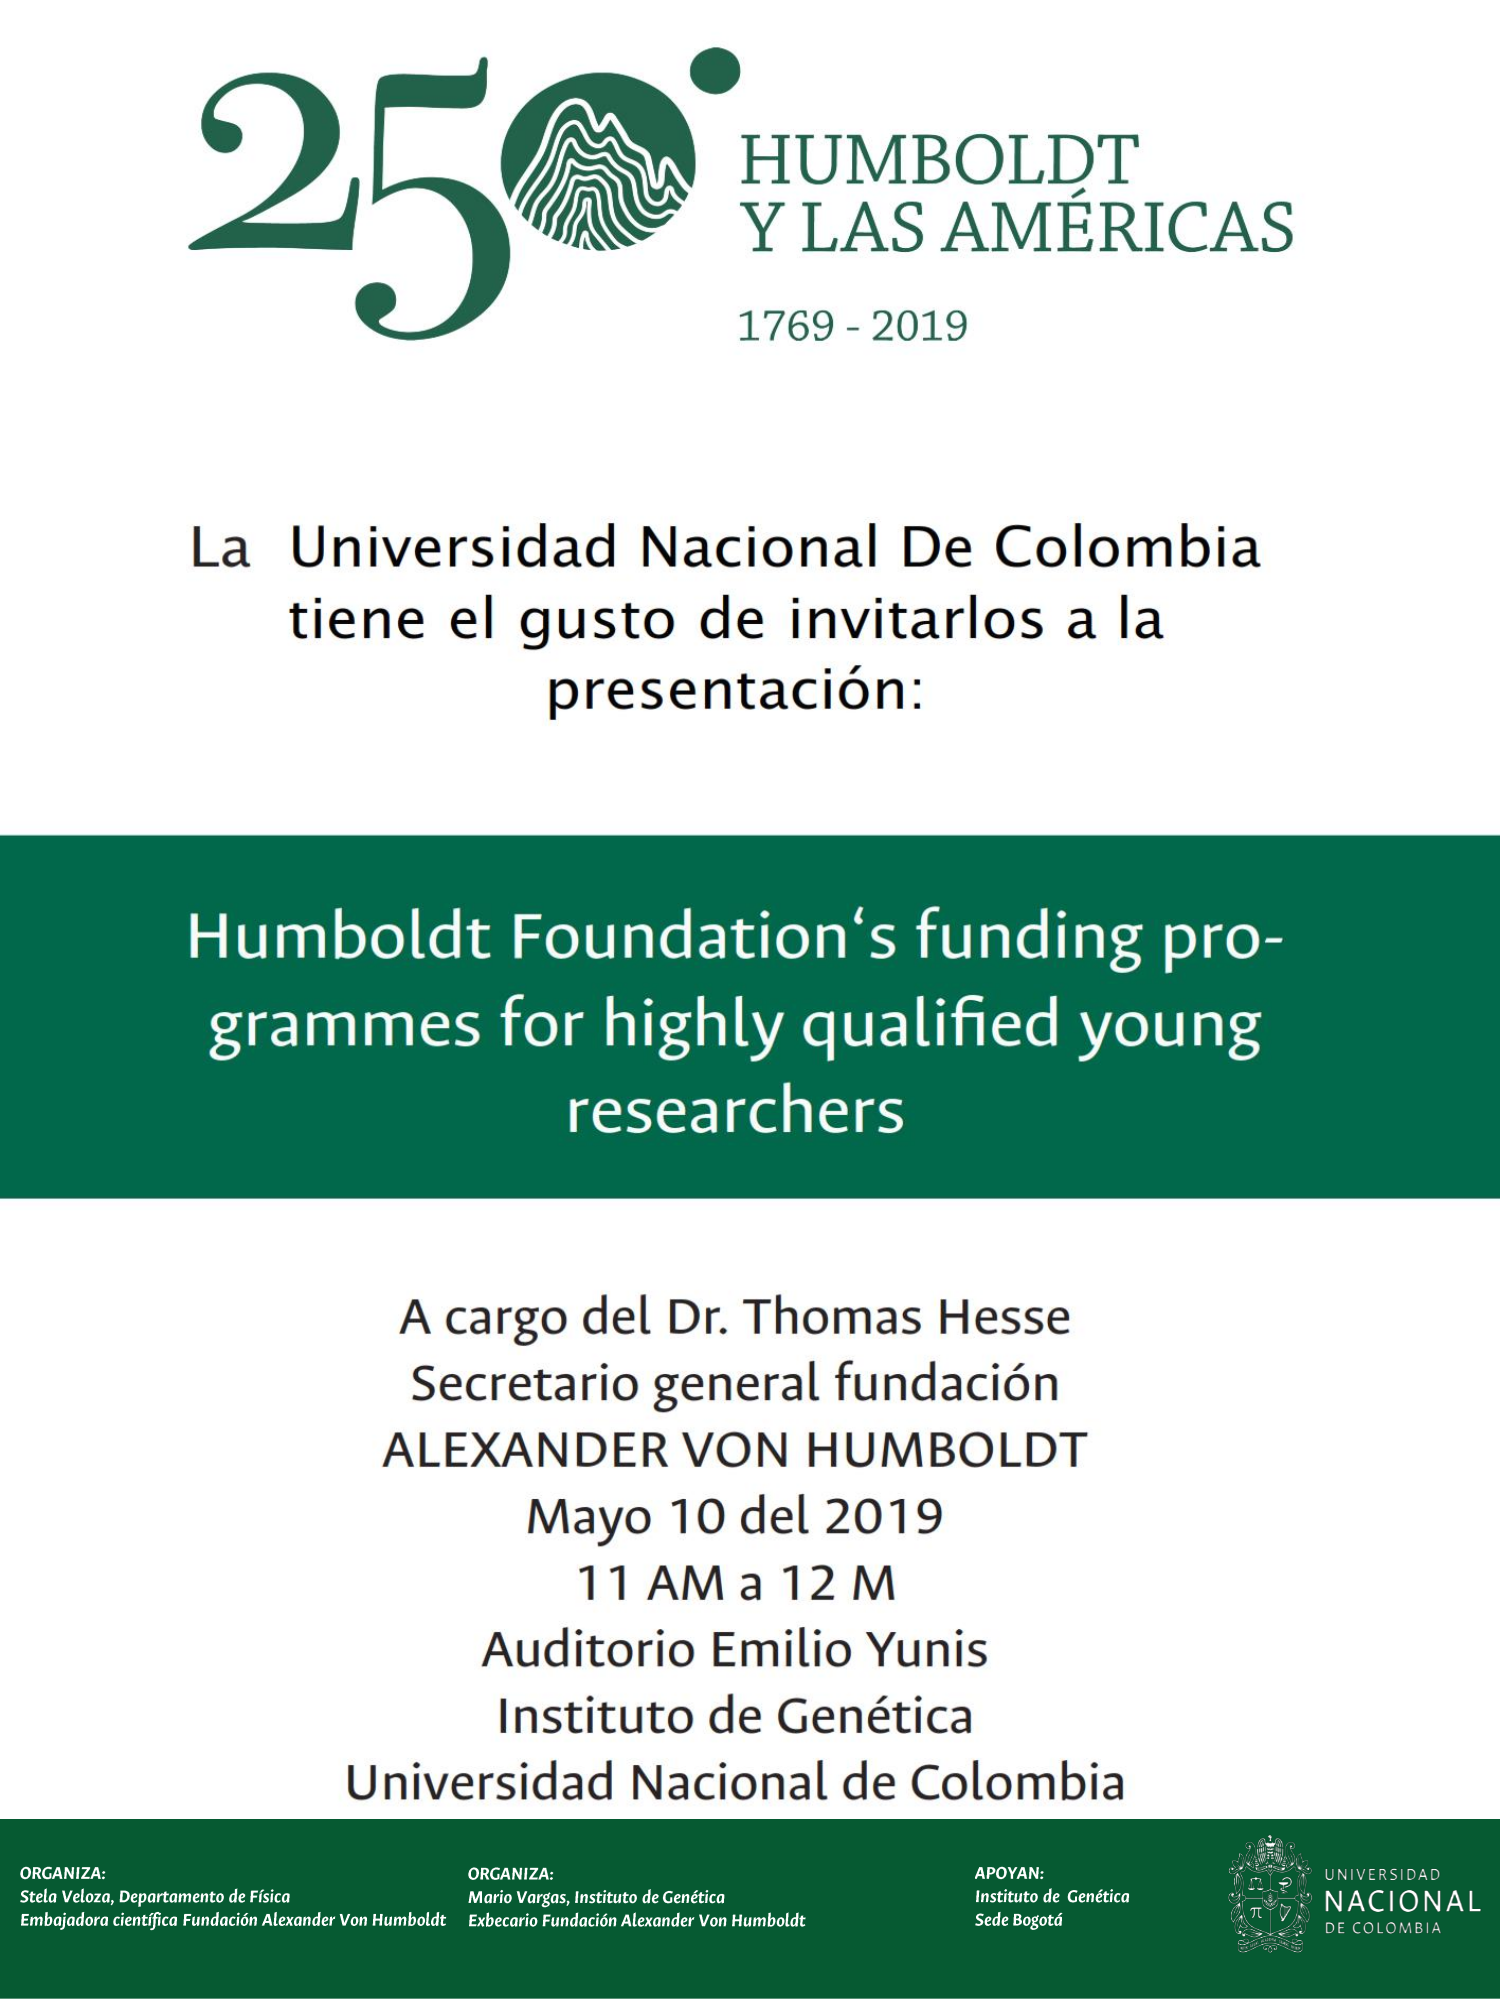 Presentation of Humboldt Foundation's funding programmes for highly qualified young researchers